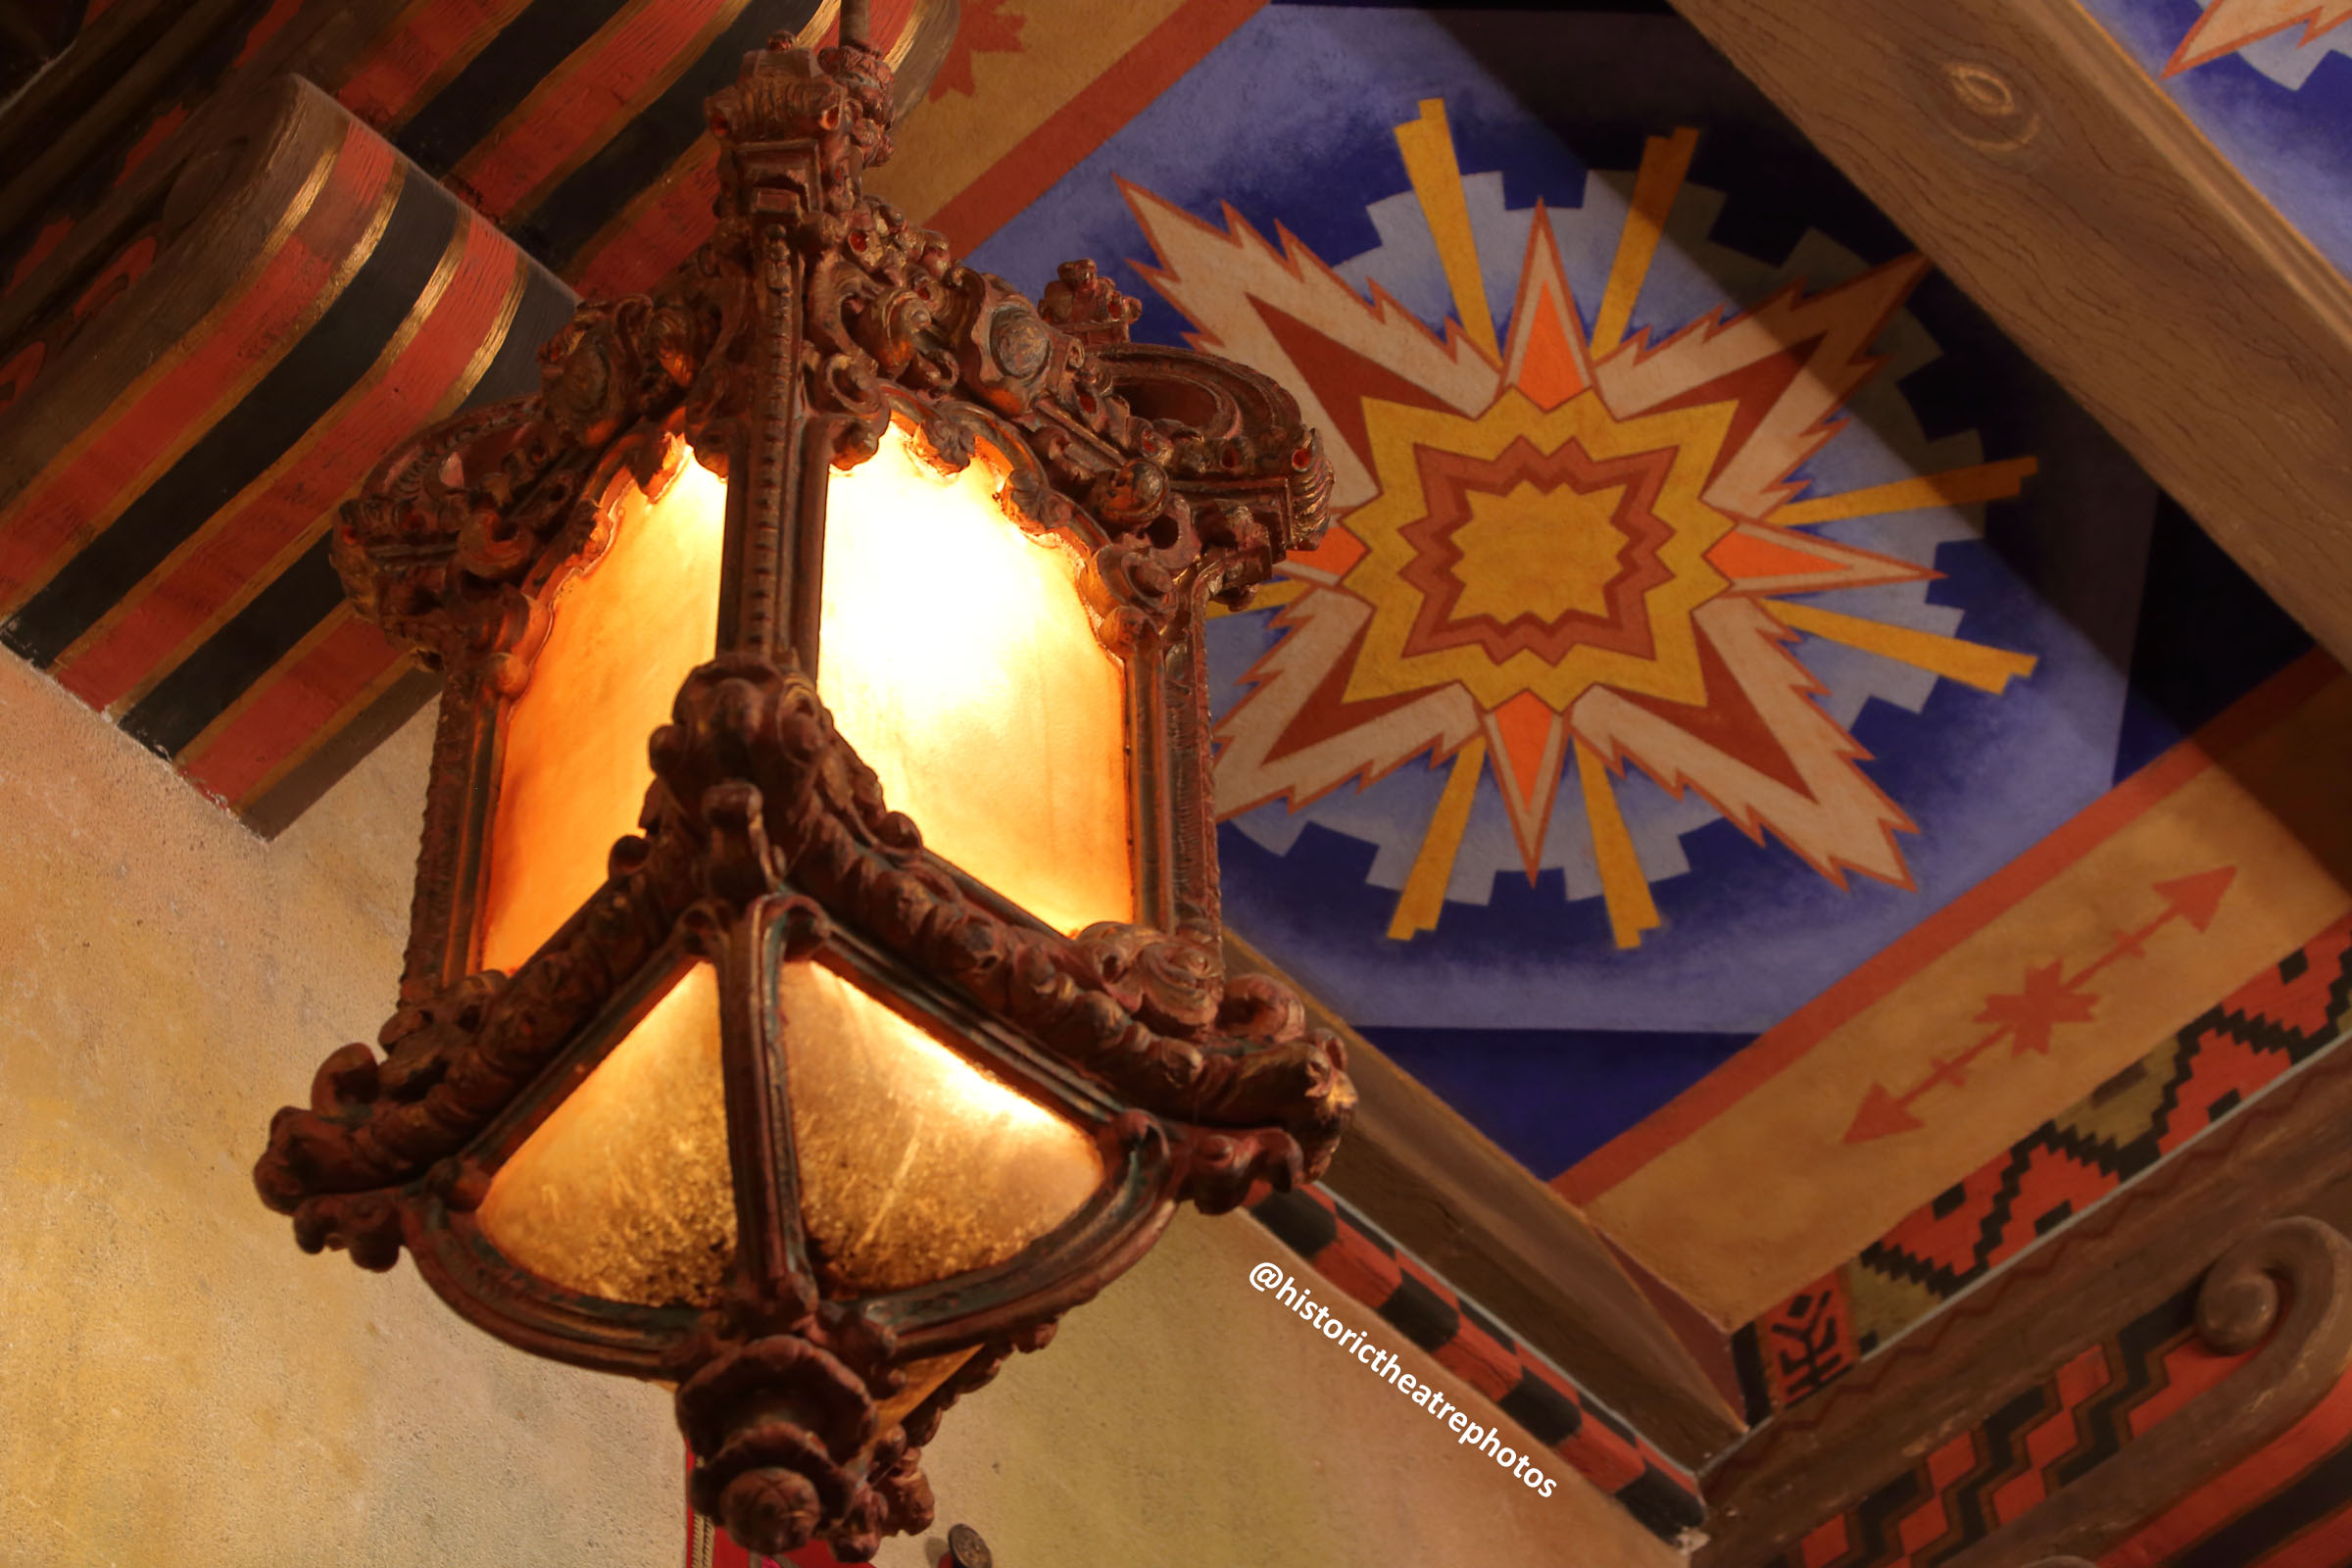 San Gabriel Mission Playhouse: House Lanterns inspired by Spanish Galleons